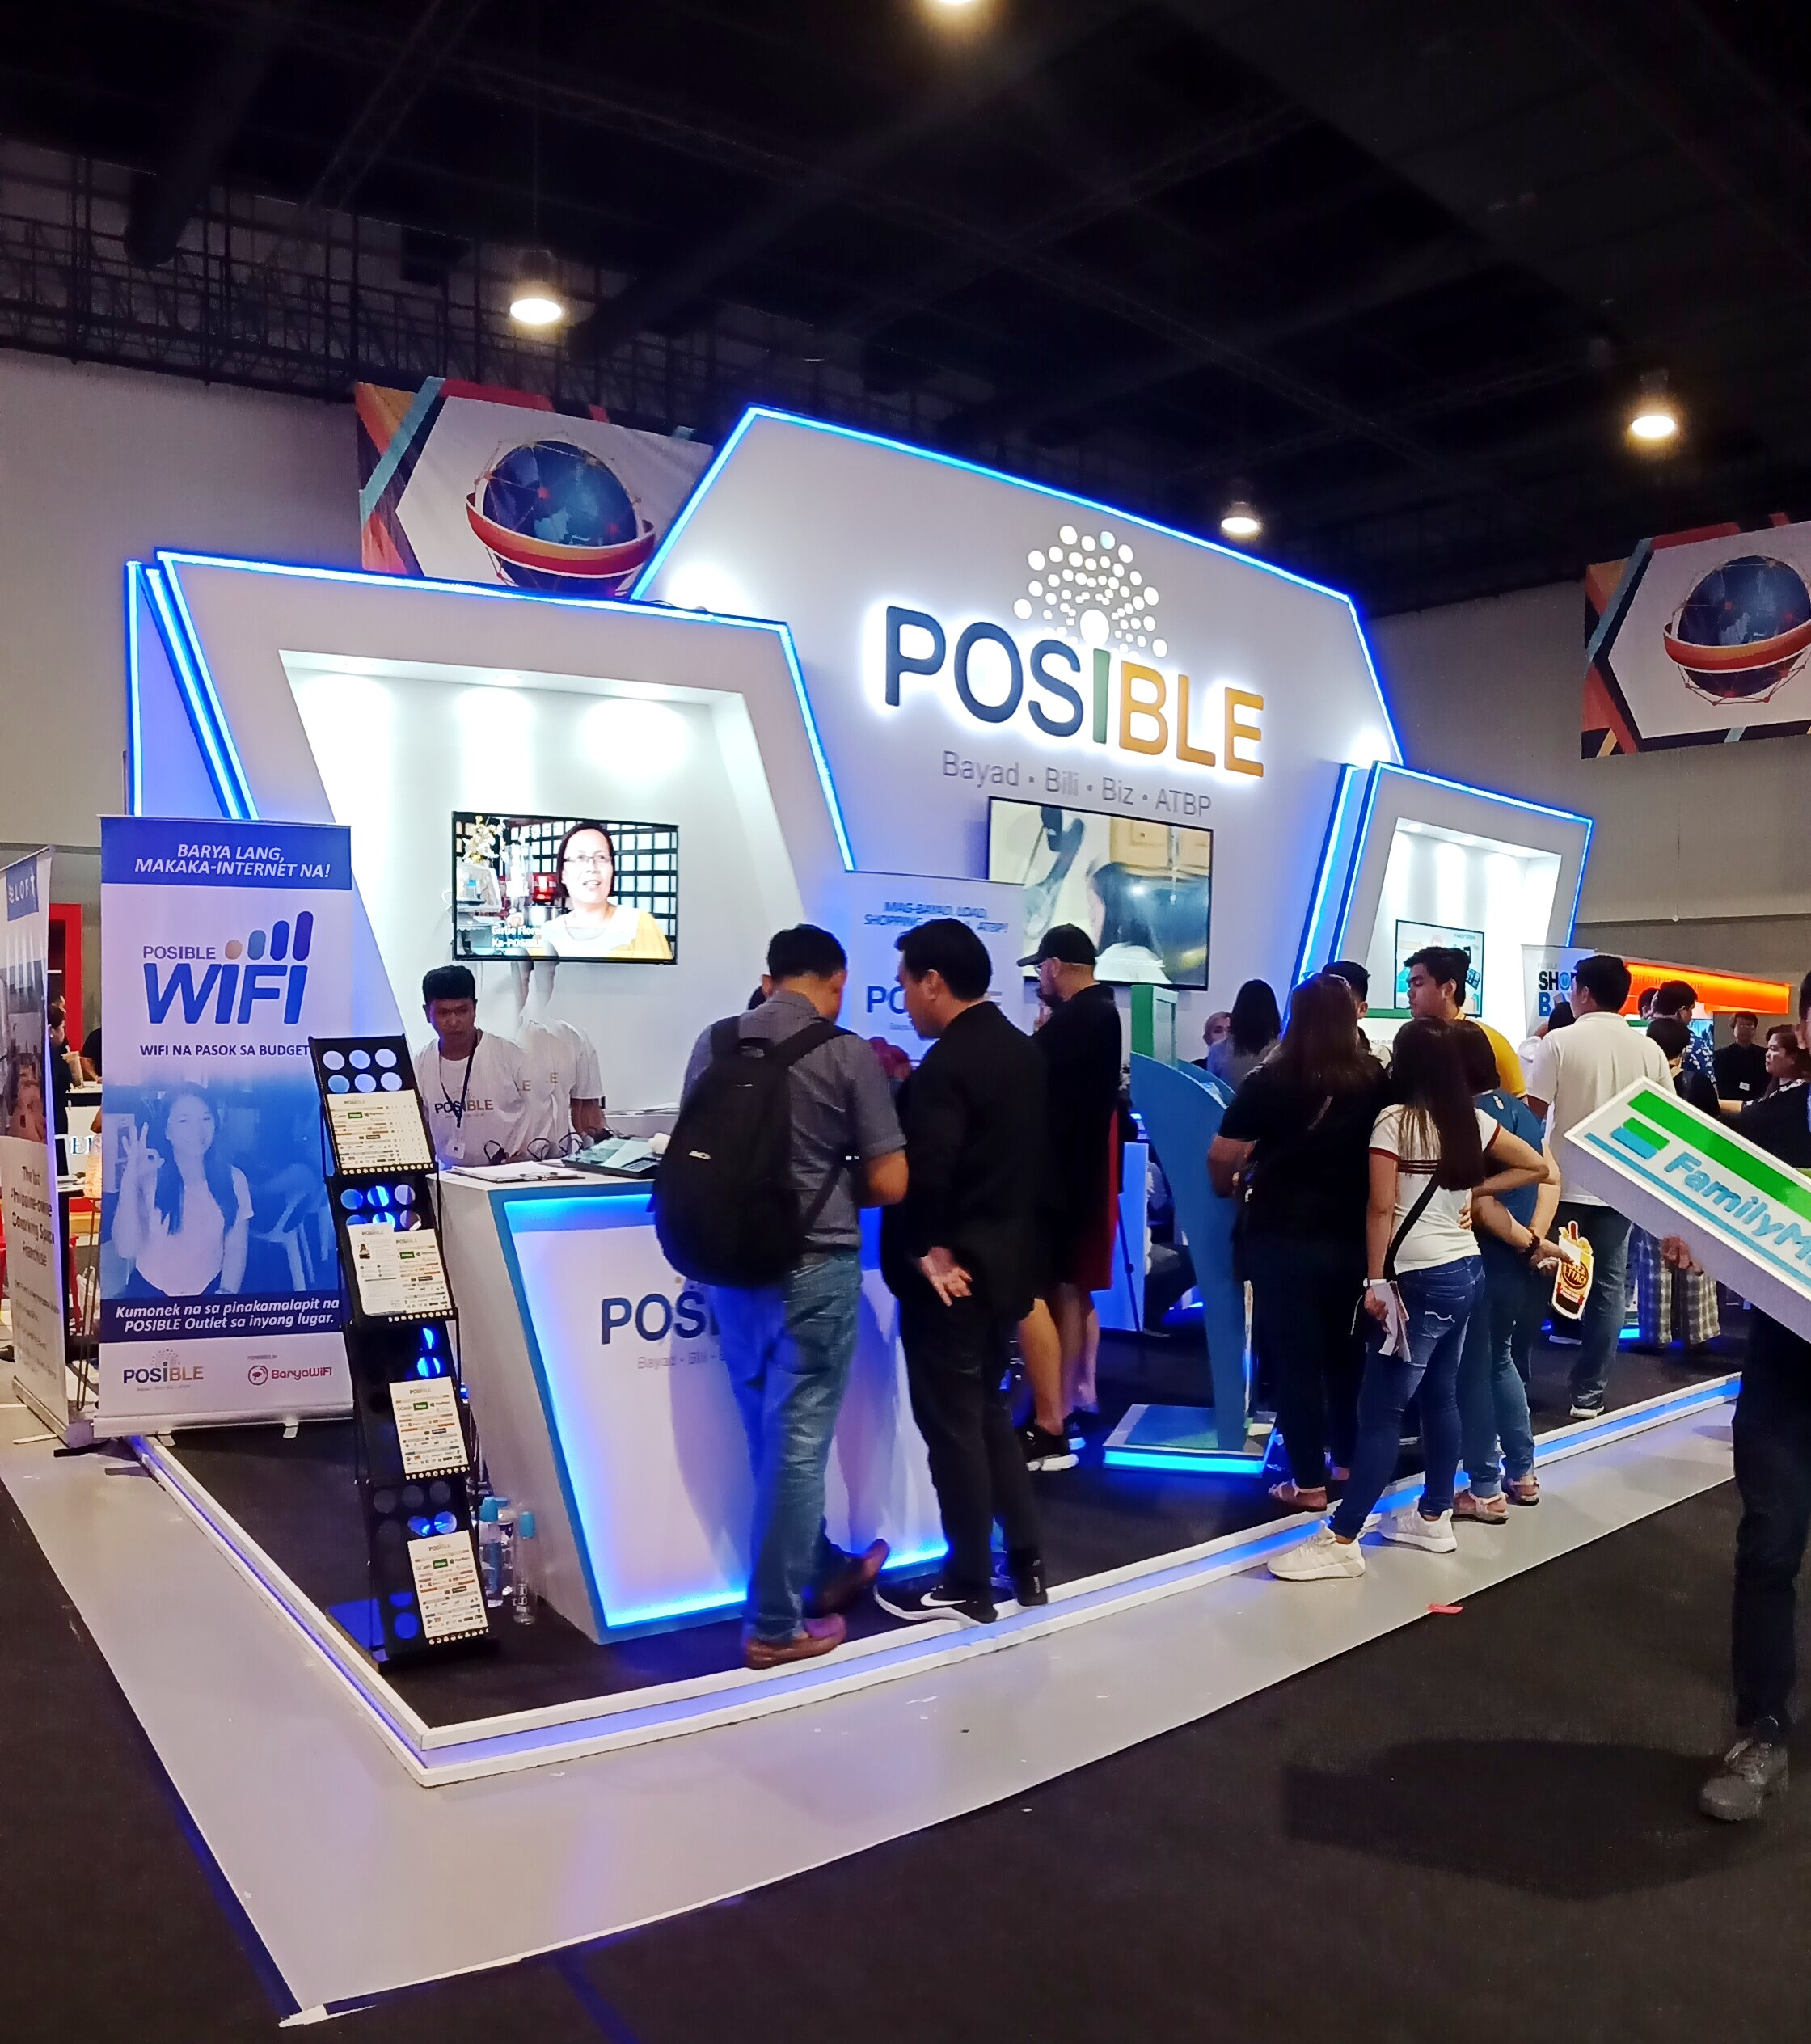 Posible booth at Franchise Asia Philippines 2019